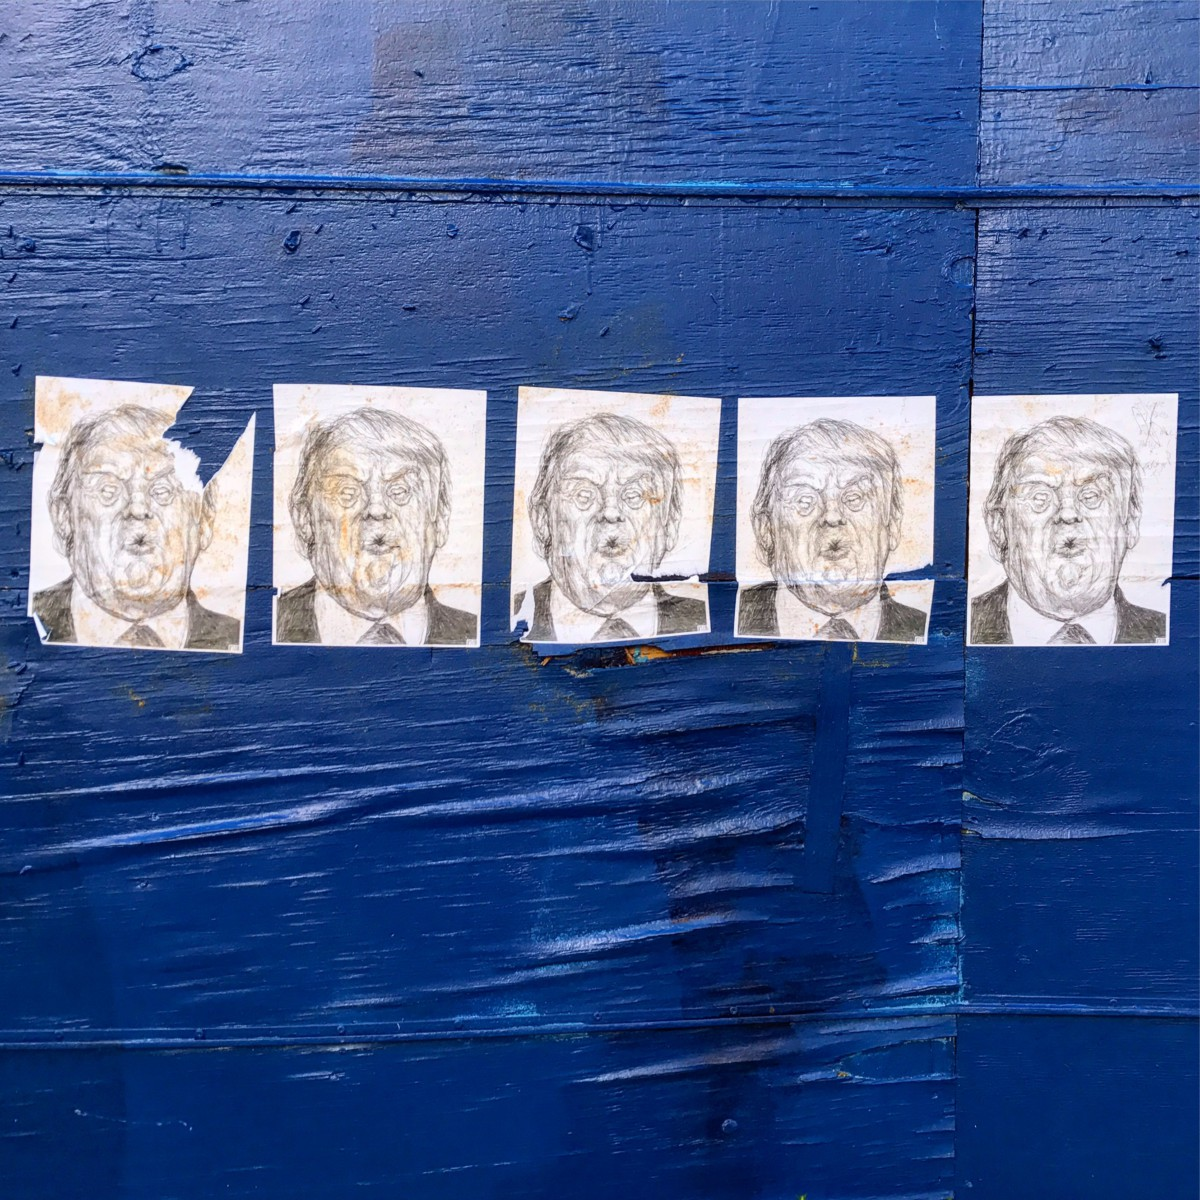 Anti-Trump street art